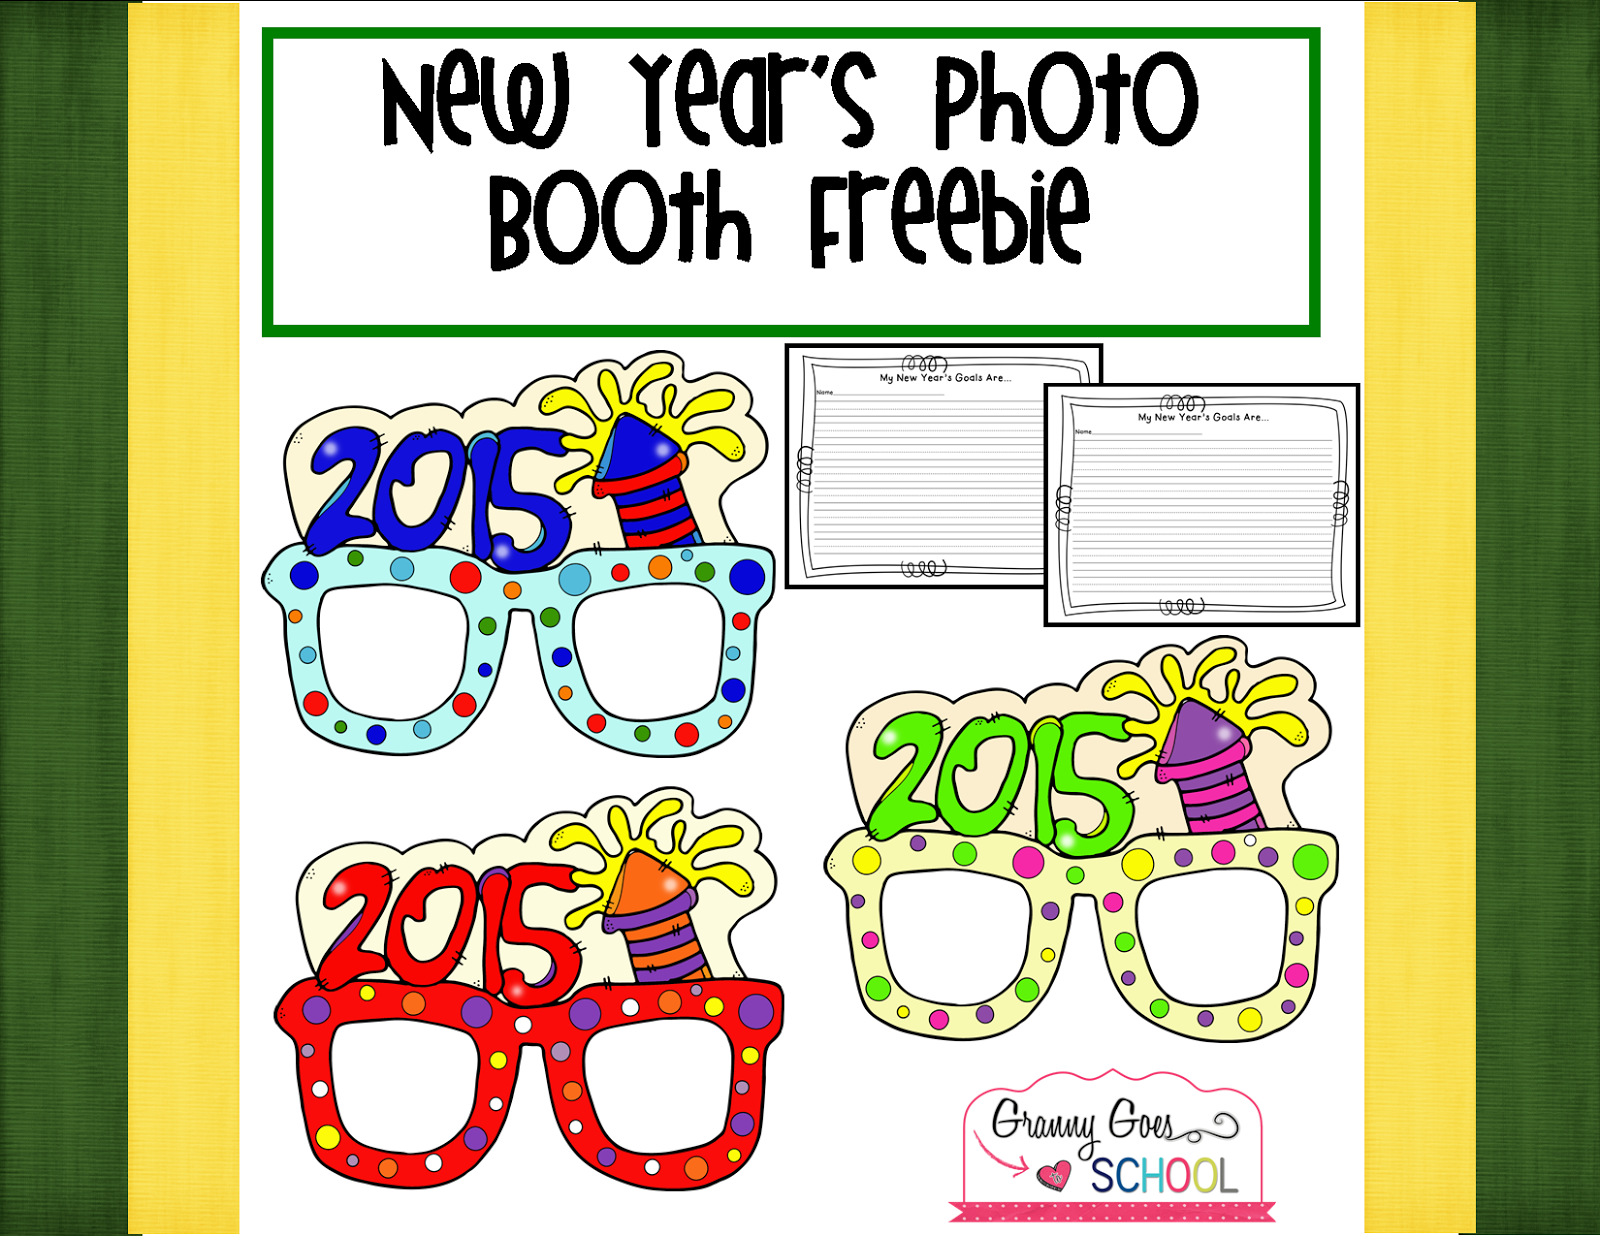 http://www.teacherspayteachers.com/Product/New-Years-Photo-Booth-Freebie-1604226